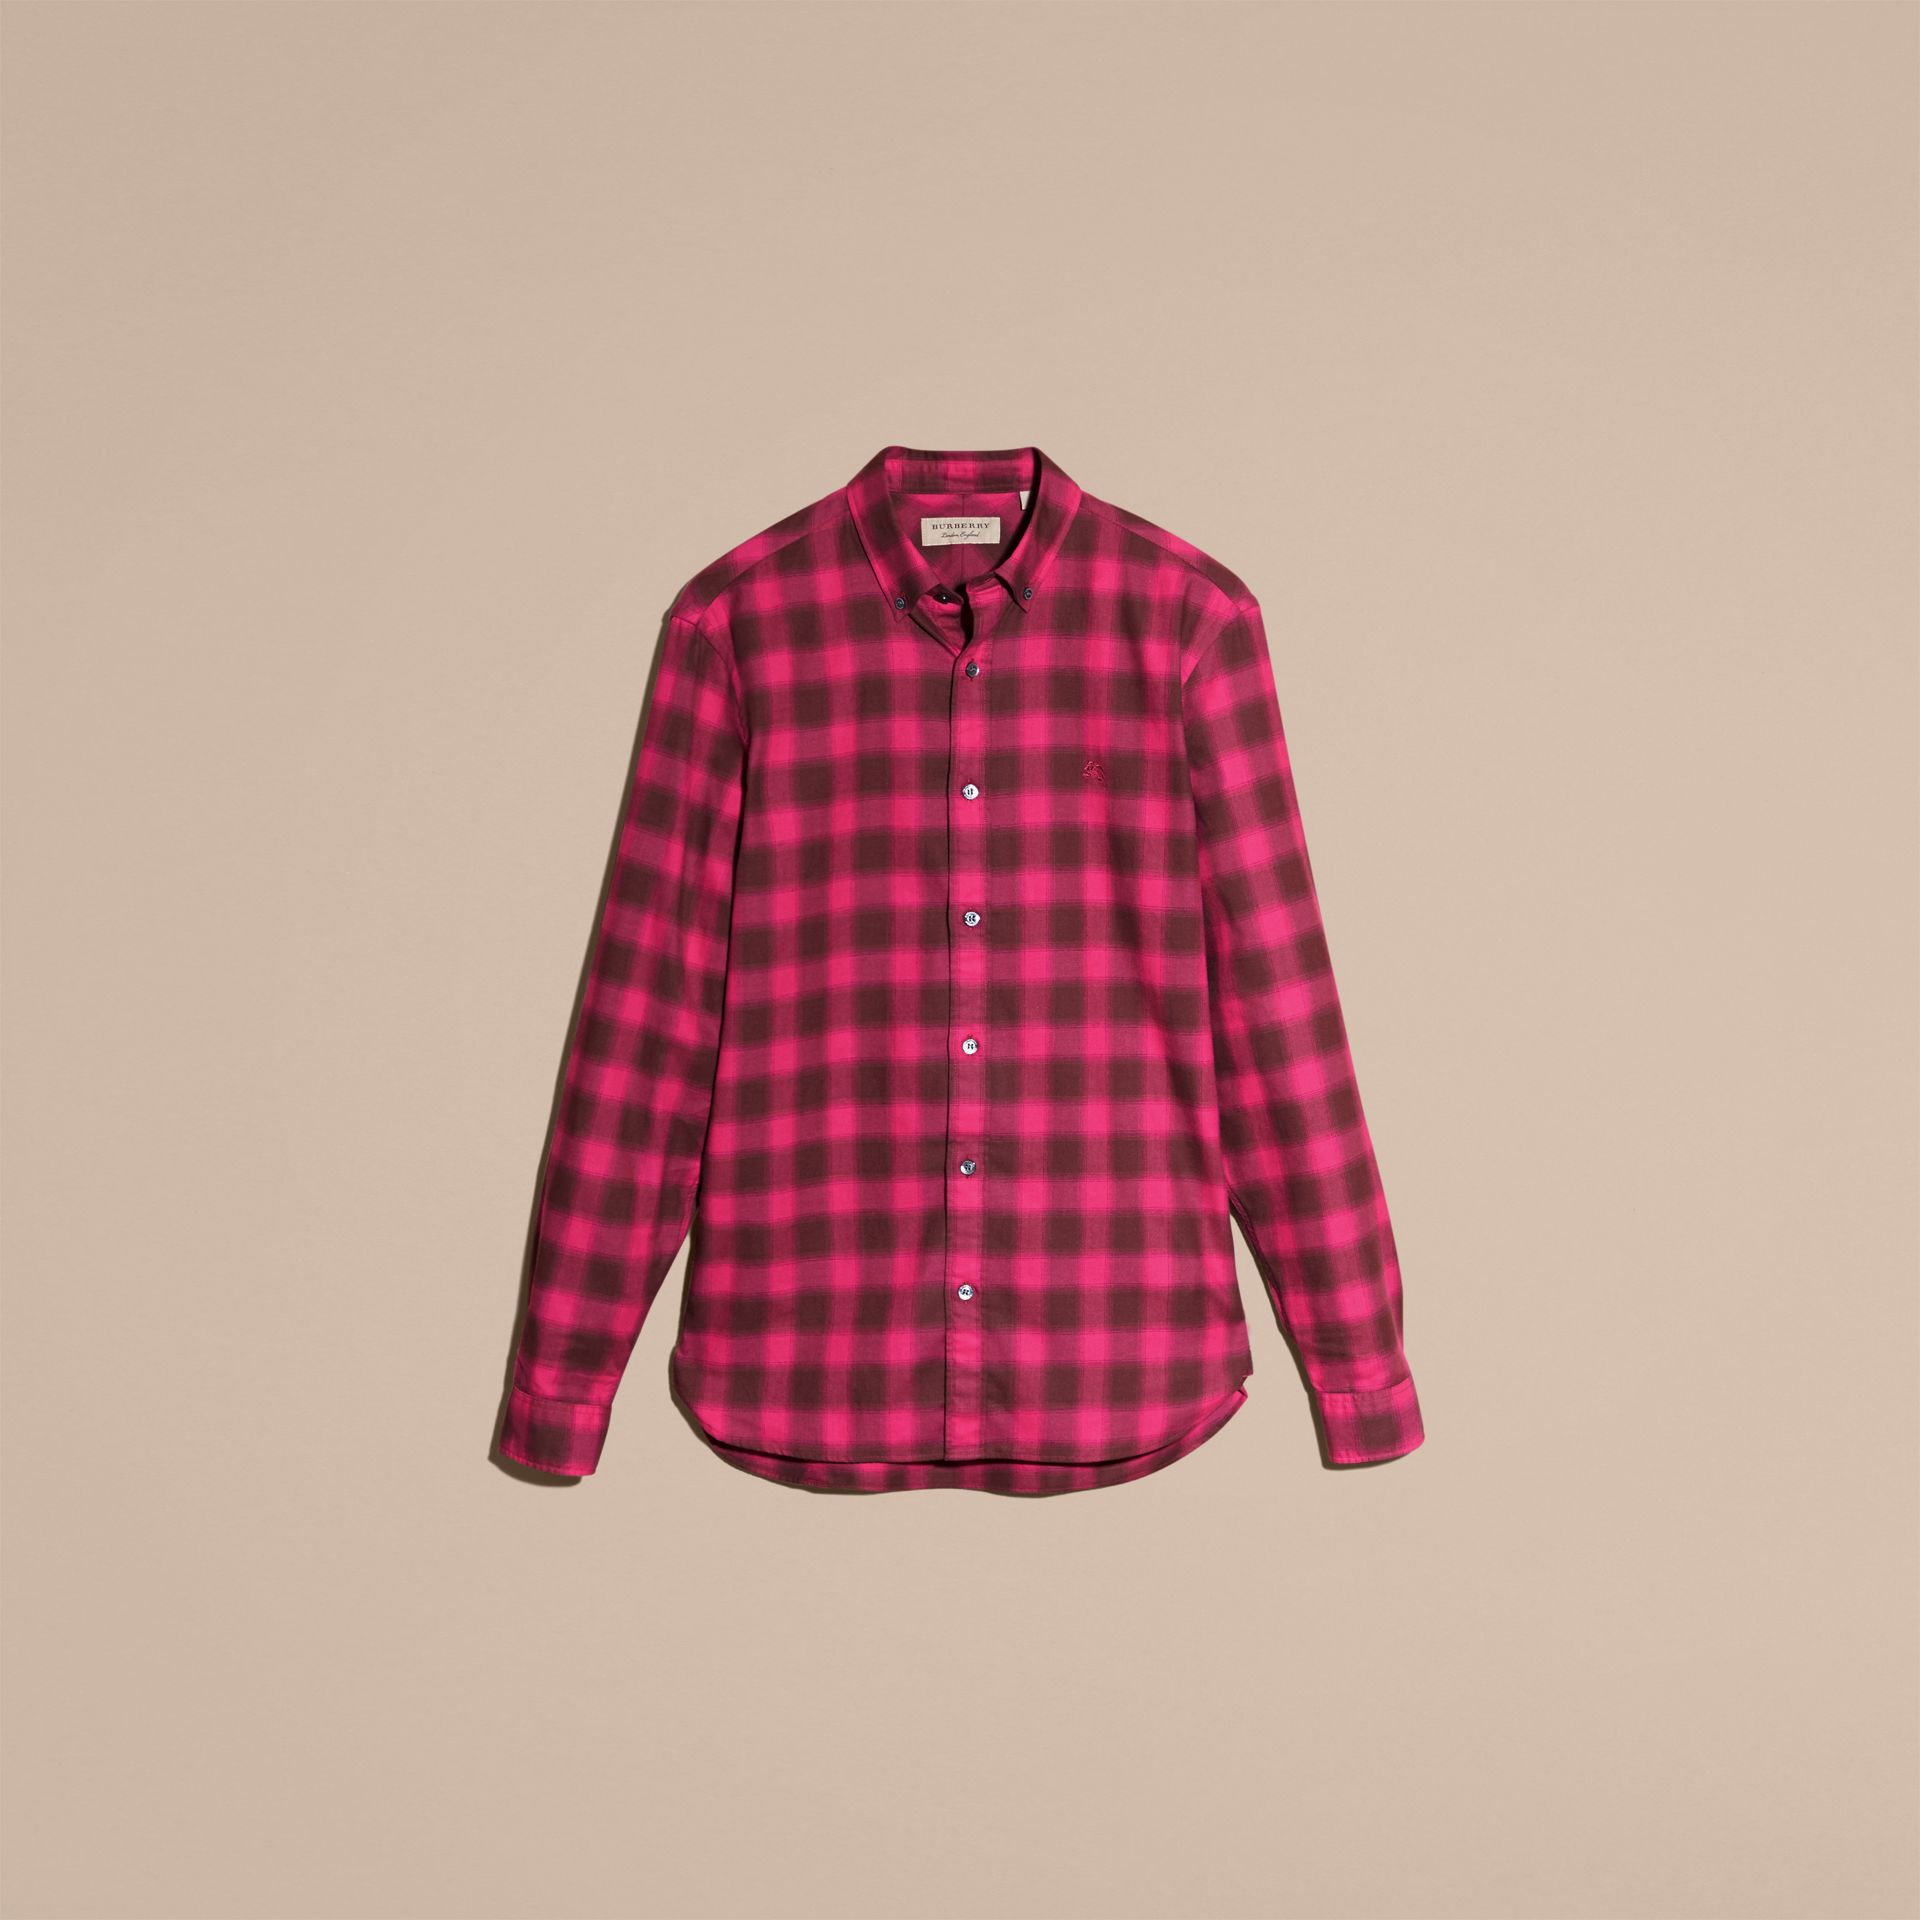 Bright rose Gingham Check Cotton Shirt Bright Rose - gallery image 4